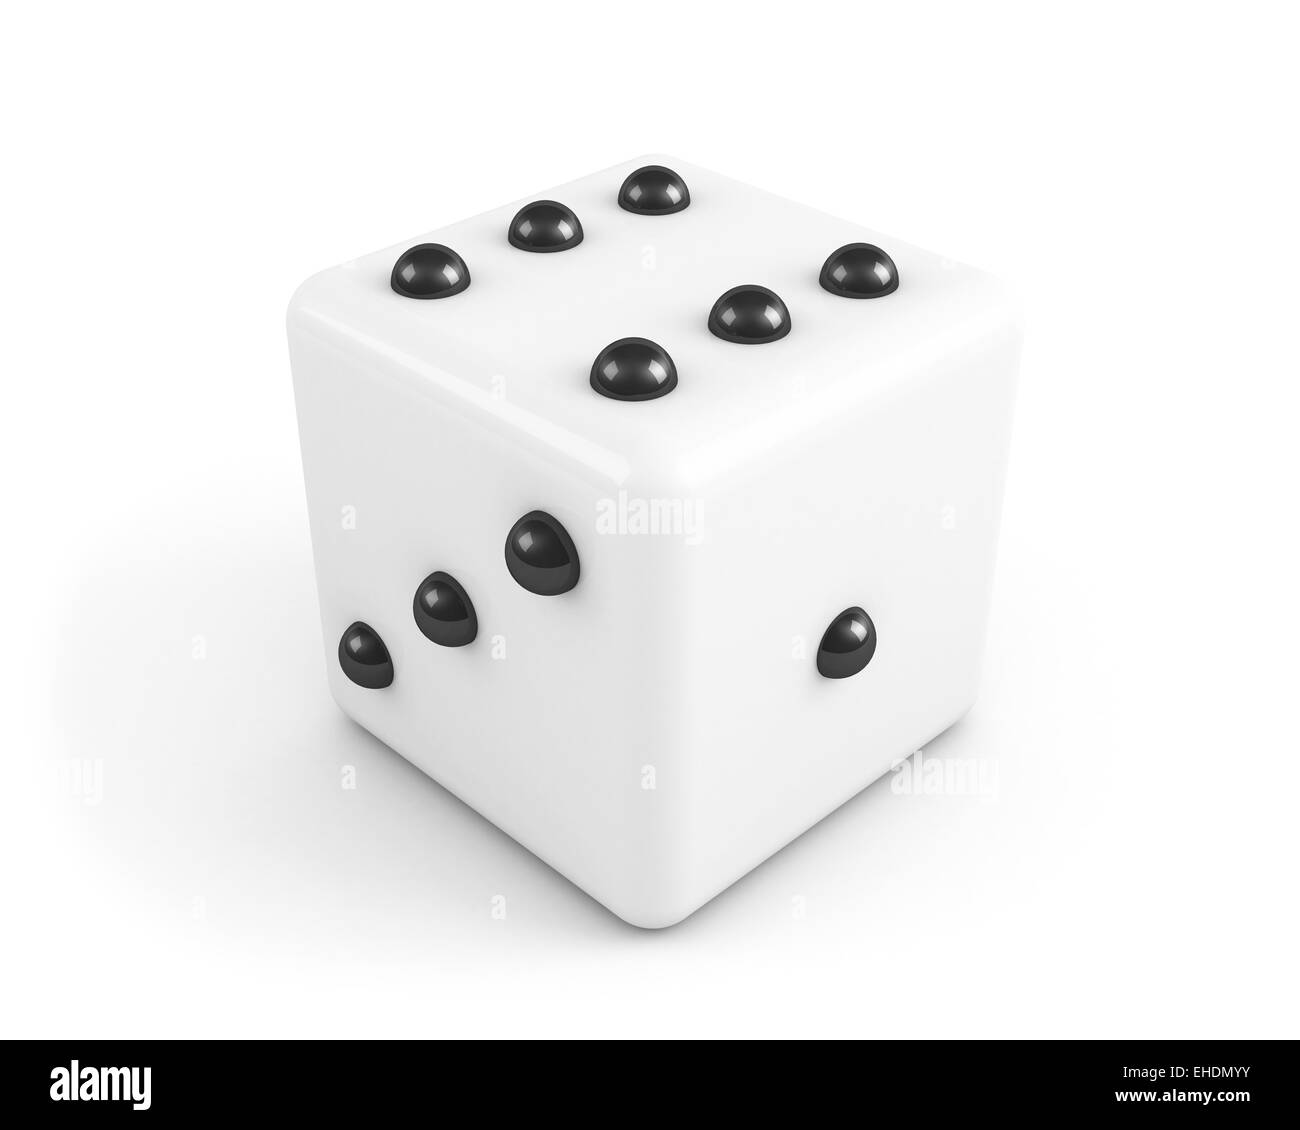 dice with black dots - Stock Image